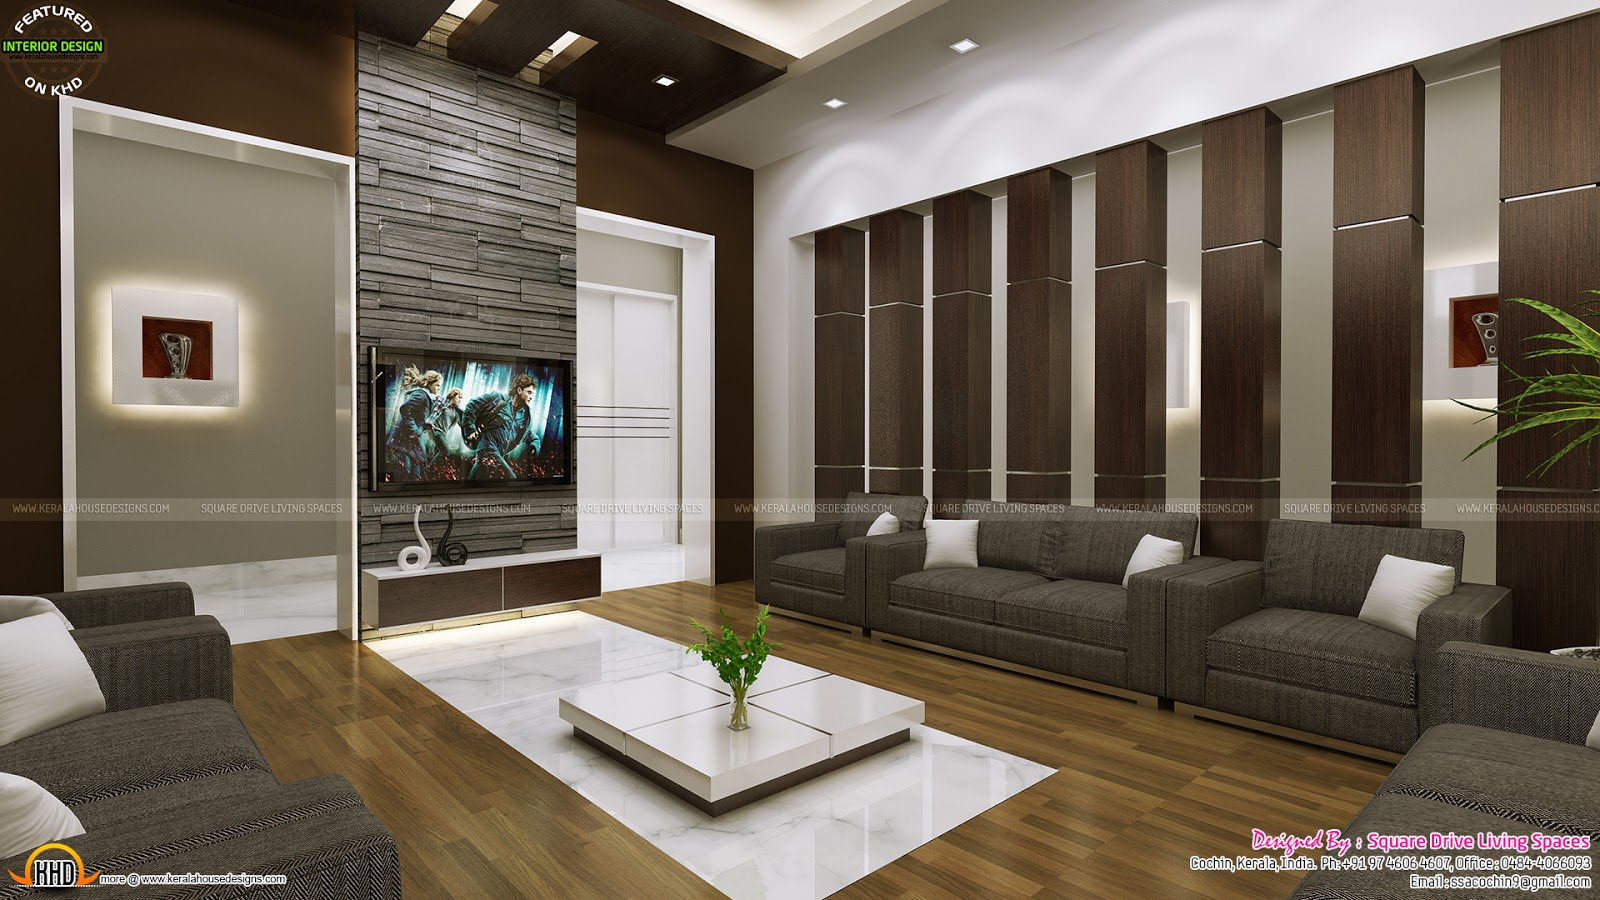 Attractive home interior ideas kerala home design and for Home sitting room design